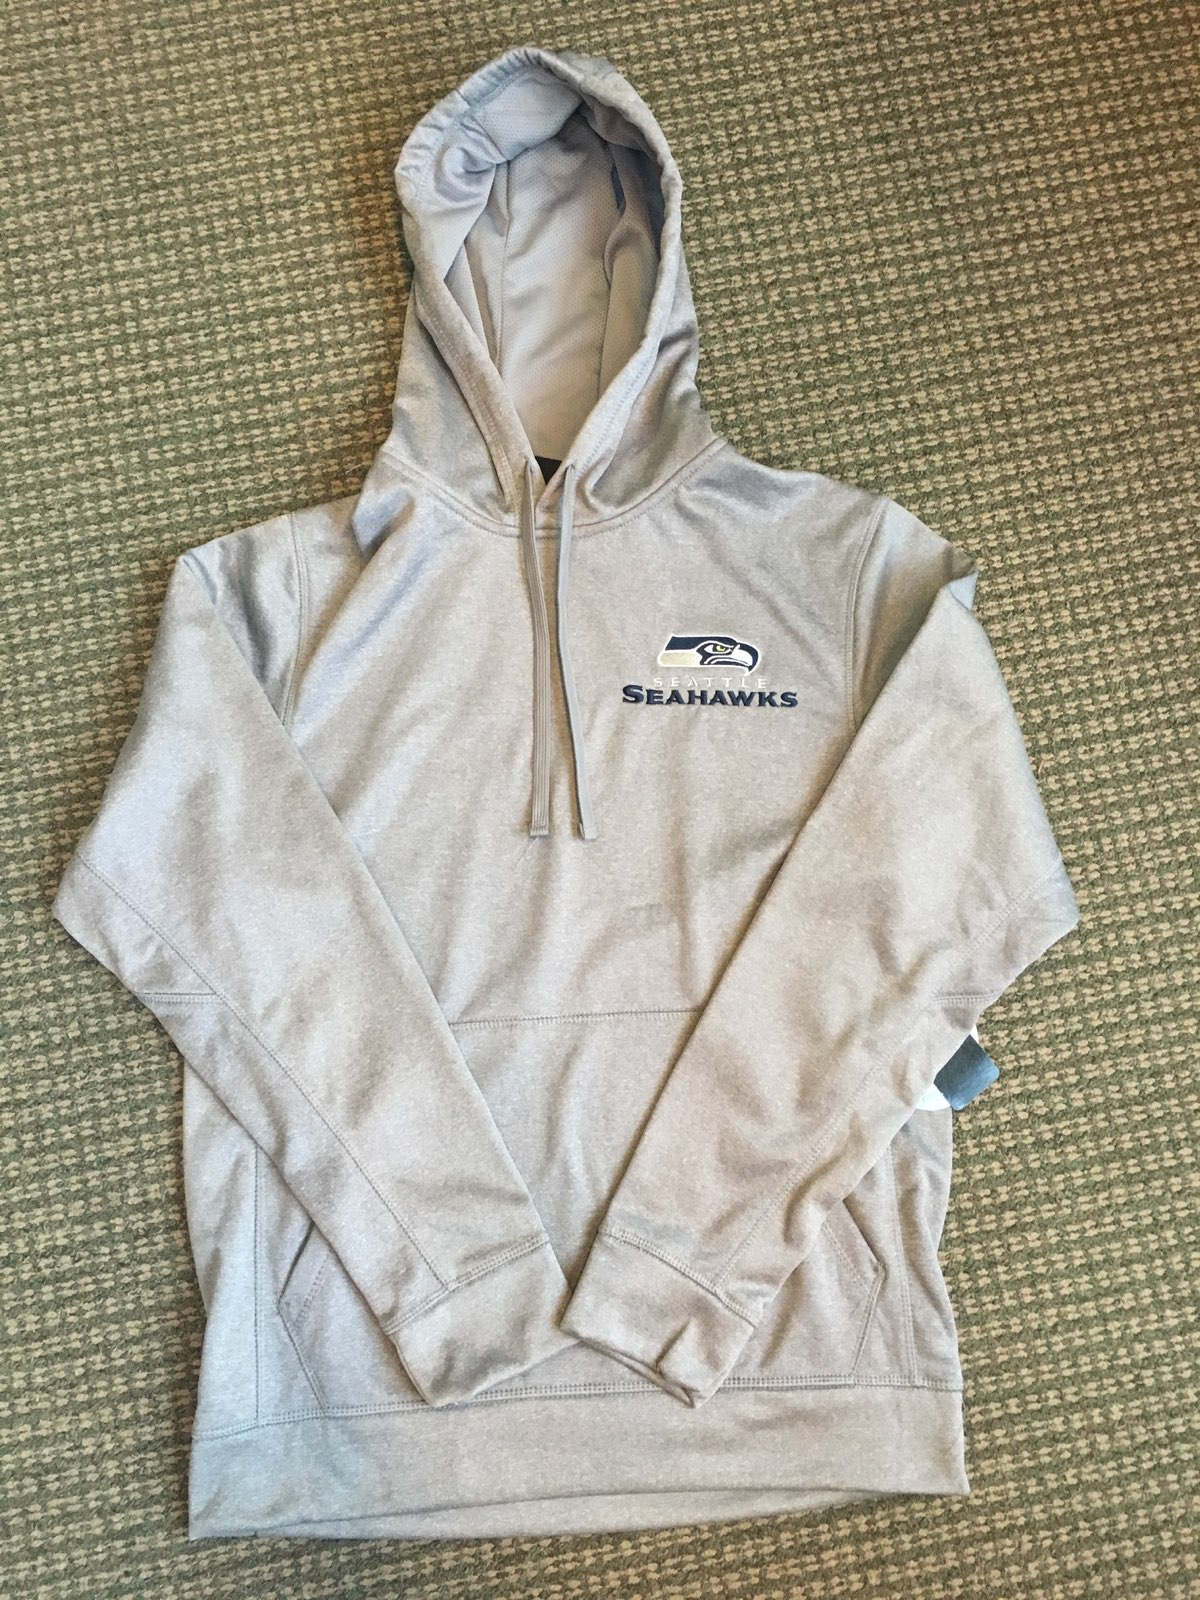 Seahawks Grey Dunbrooke hoodie Size Large